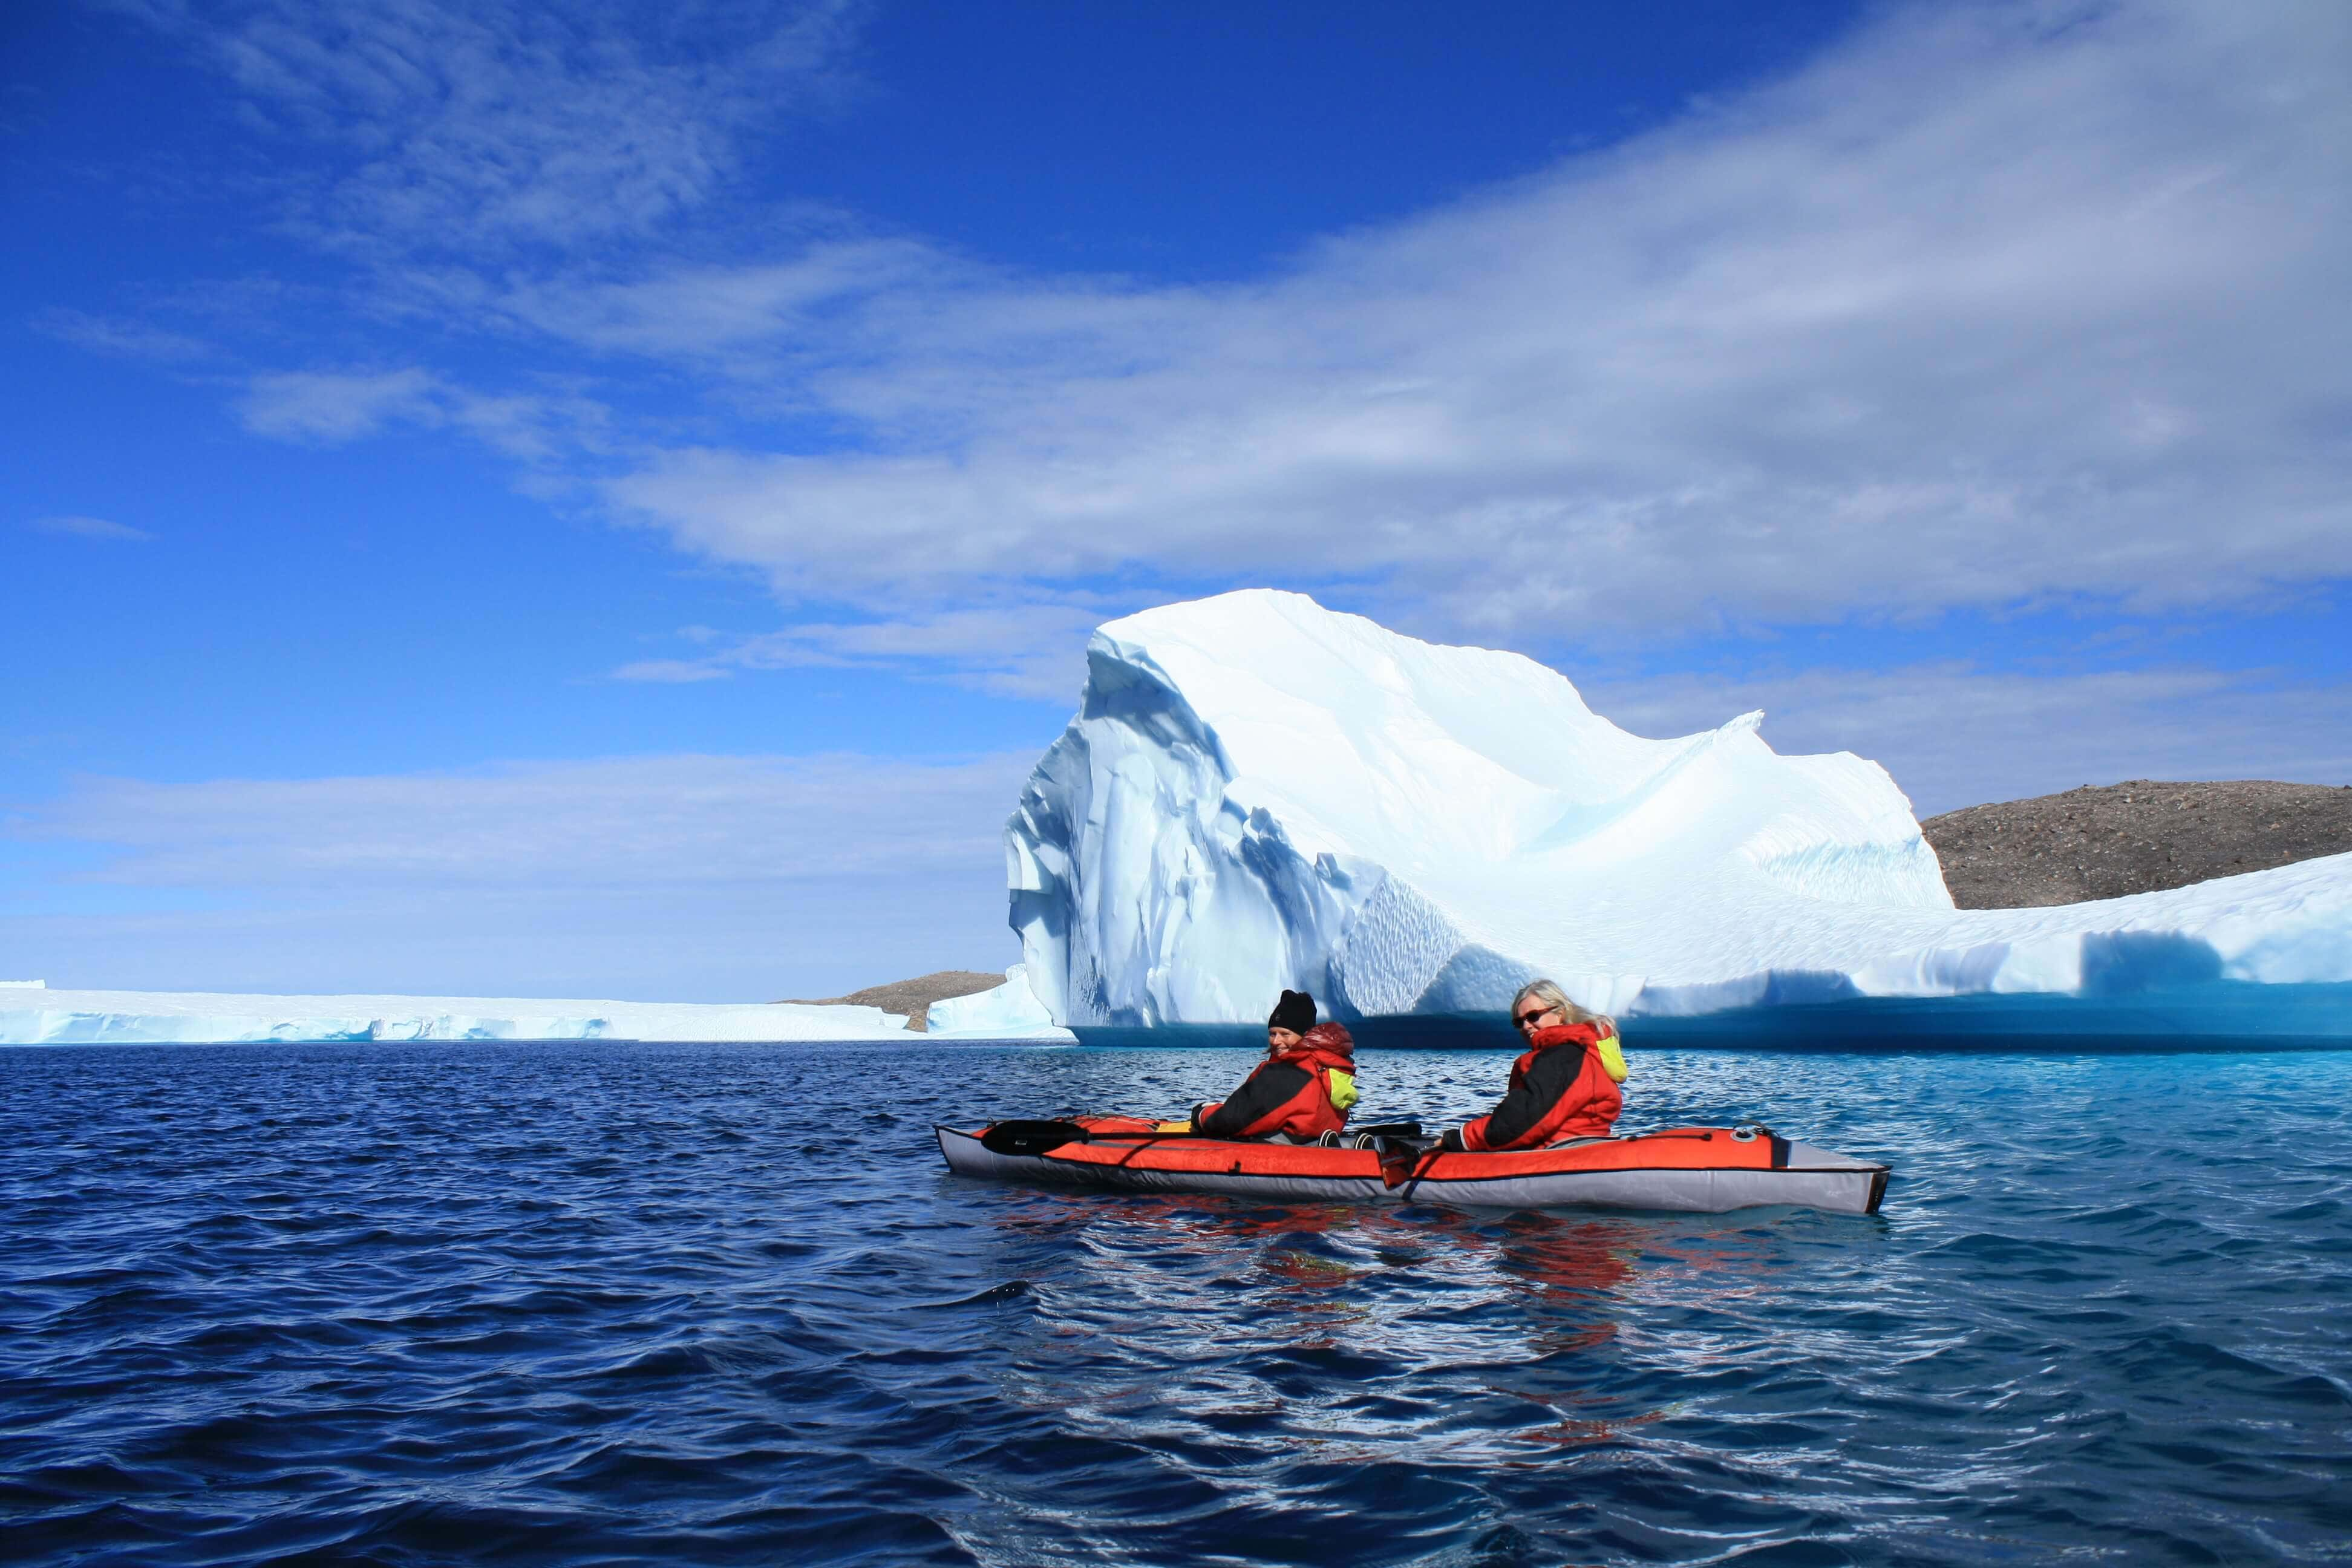 20 of the most unforgettable travel experiences in the world - Kayaking among icebergs in Nunavut, Canada